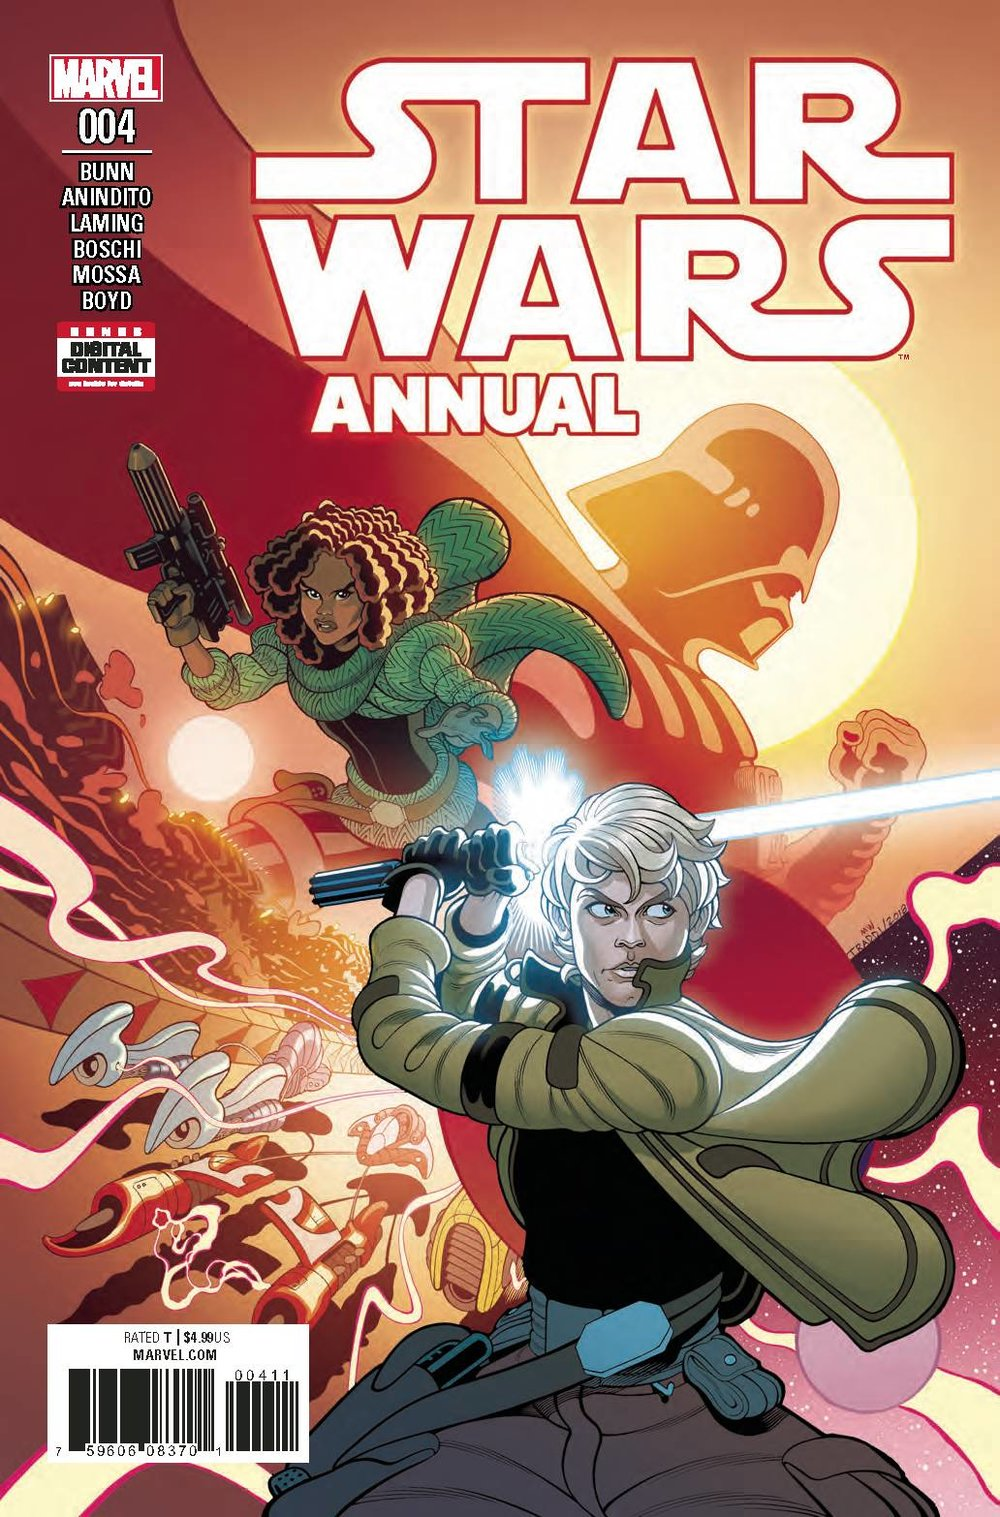 STAR WARS ANNUAL 4.jpg